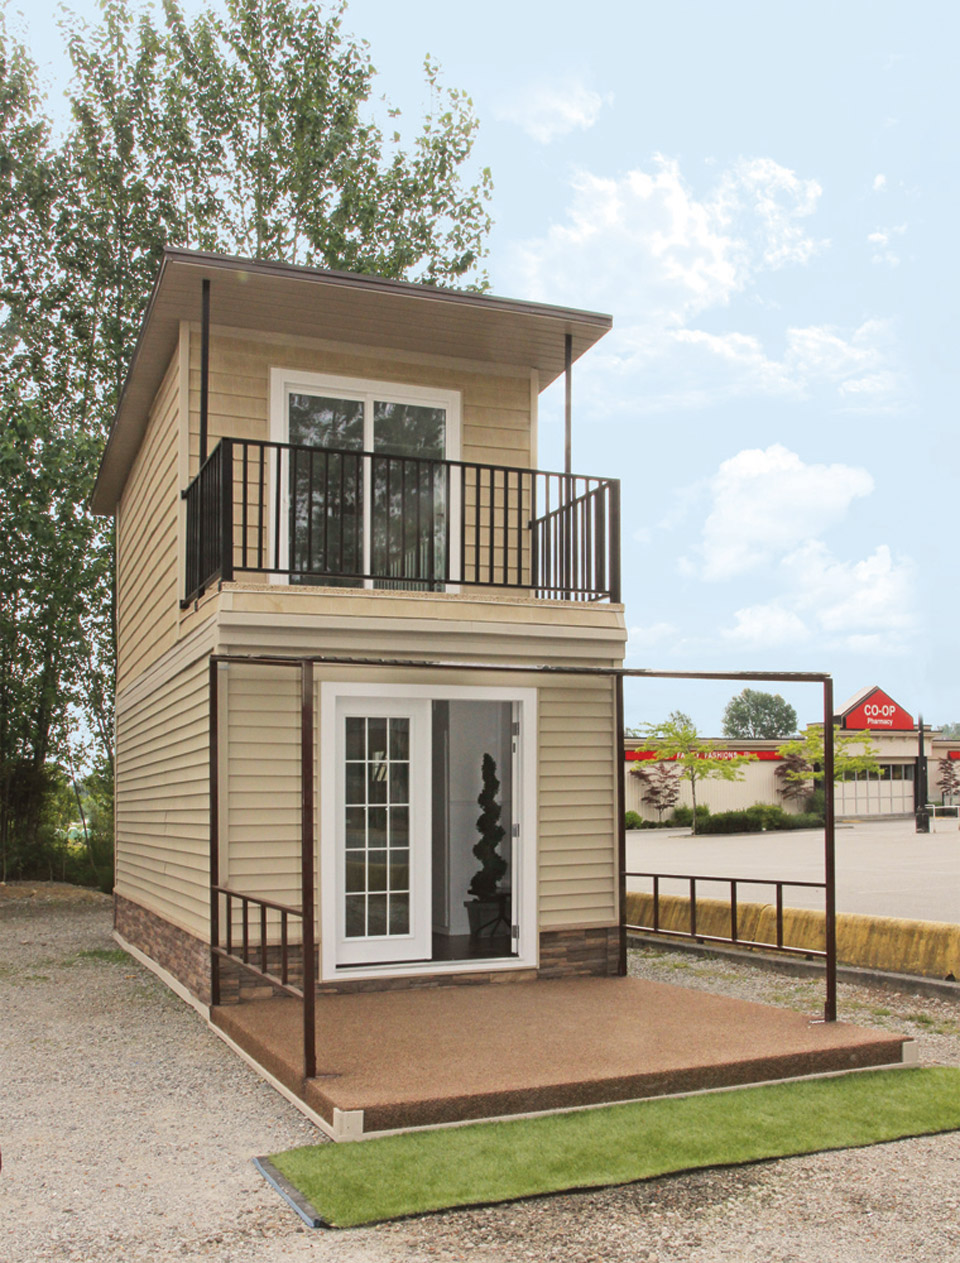 The eagle 1 a 350 sq ft 2 story steel framed micro home for Small two storey house